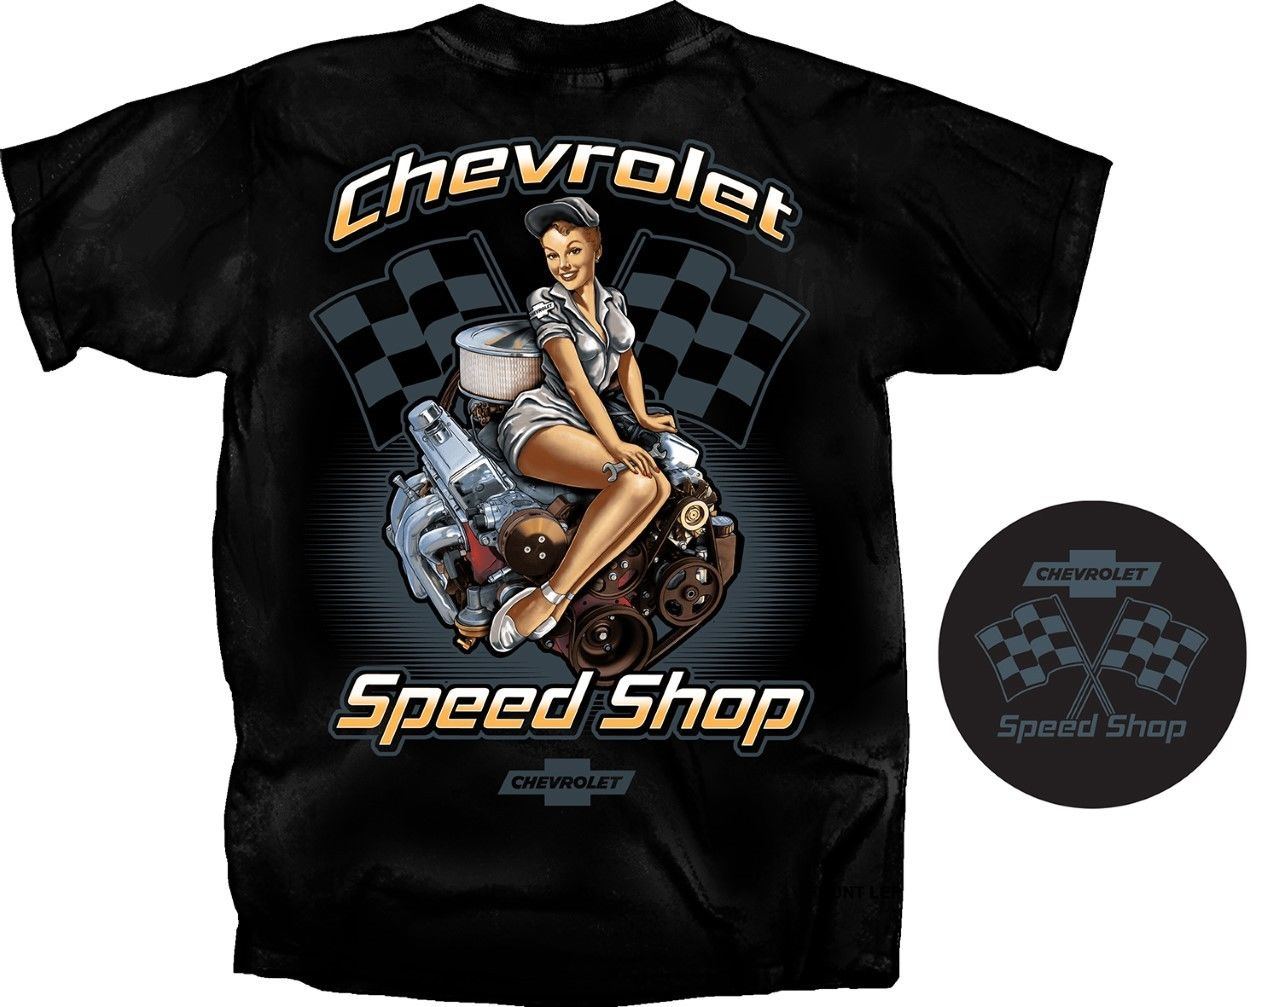 2018 Summer Cool Tee Shirt Chevrolet Speed Shop Pin-Up Girl T-Shirt~Black~Race Flags Small Block Engine Funny T-shirt